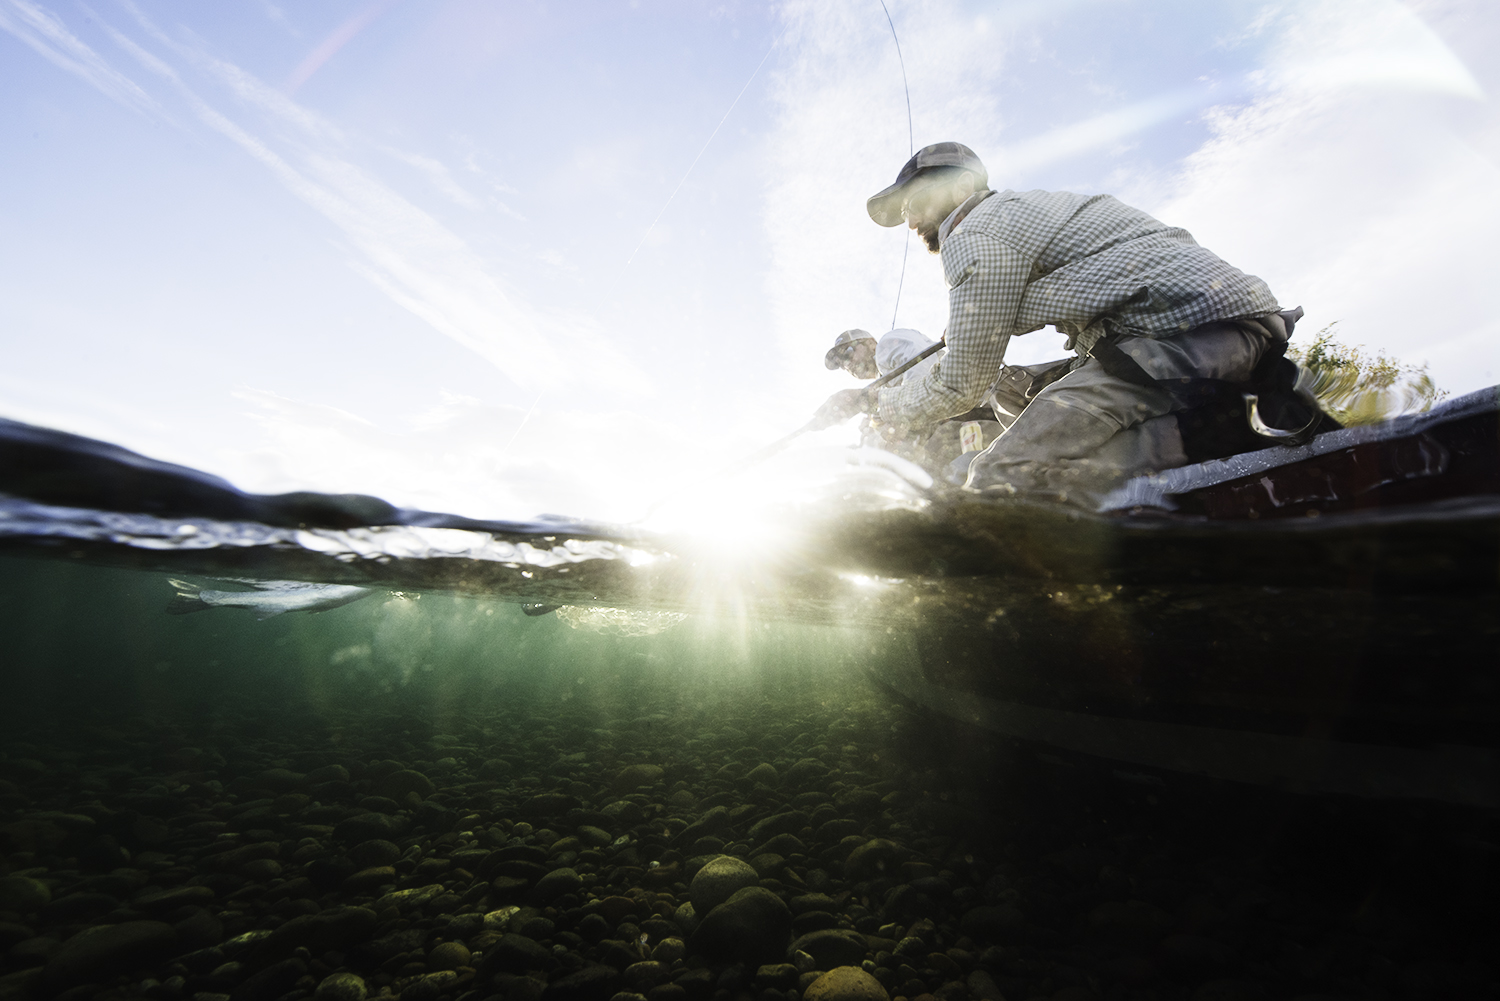 Pablo Vinaras gets the net ready a few weeks ago on the Limay River, Argentina.